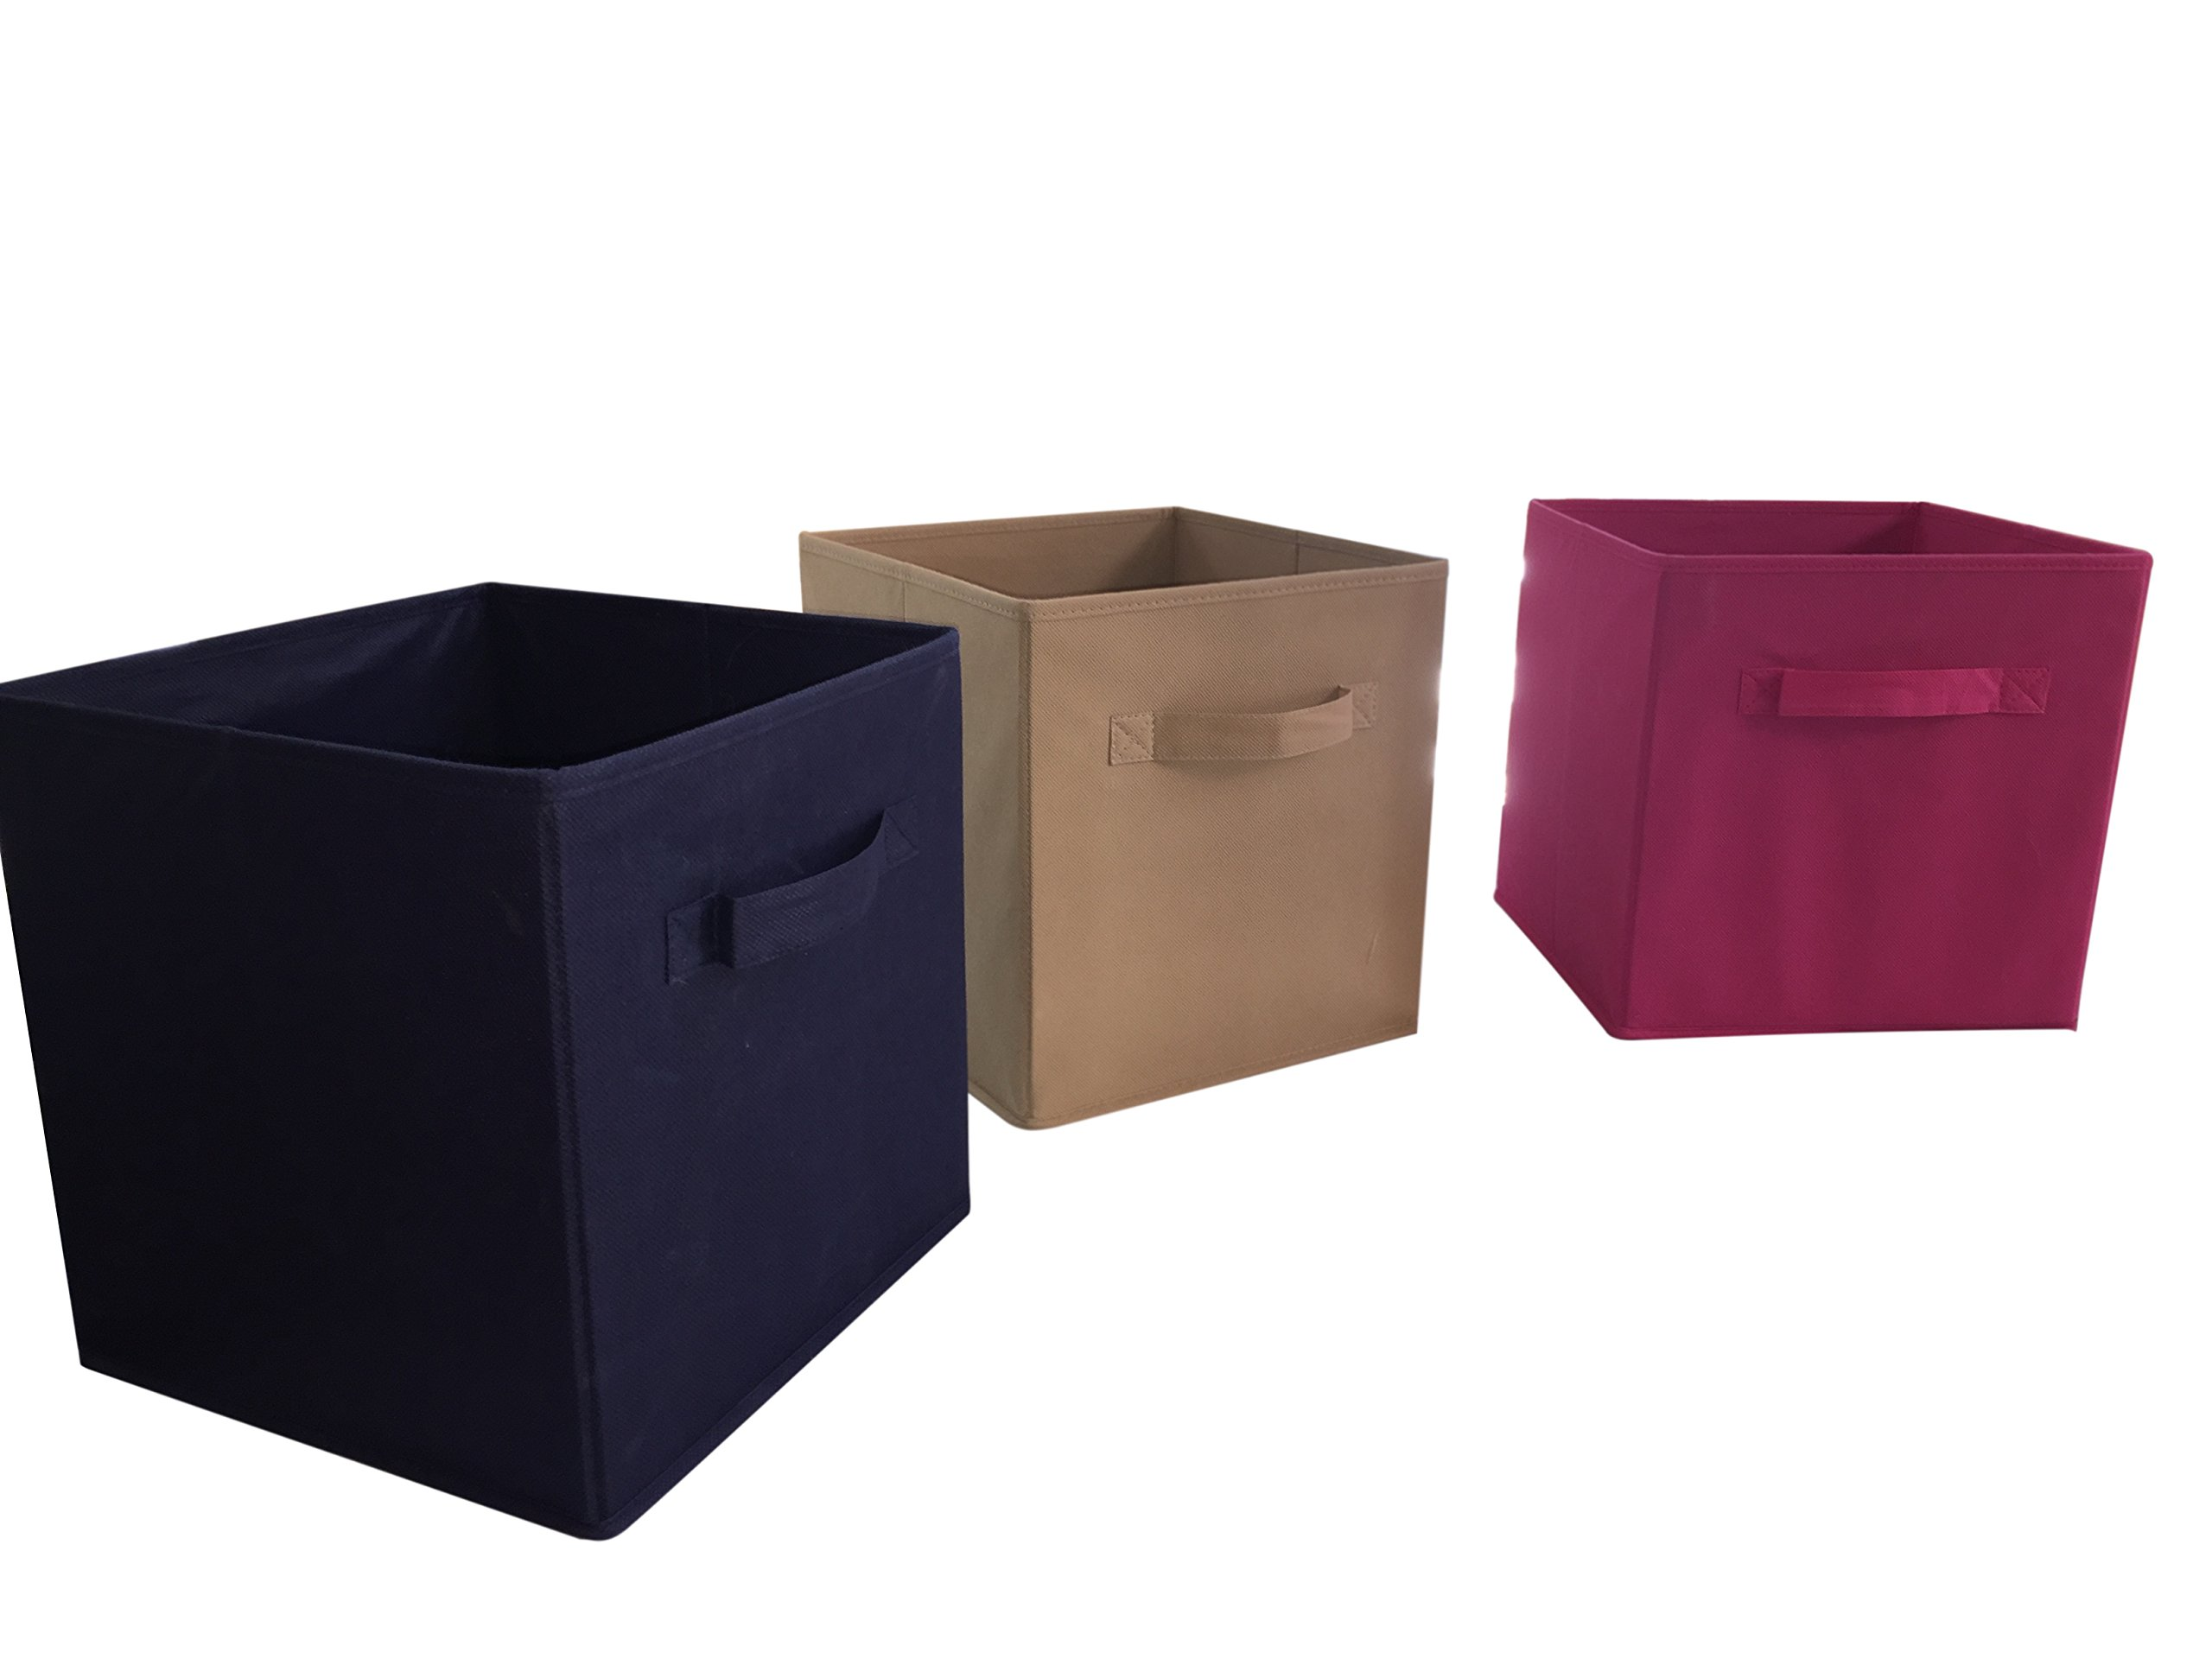 Brown Soft Sided Storage Boxes – 6 Pack Made of Durable Fabric to Last a Lifetime Great for Home Office or Apartment. These work well in Kitchens, Living Rooms, Laundry and Dorm Rooms